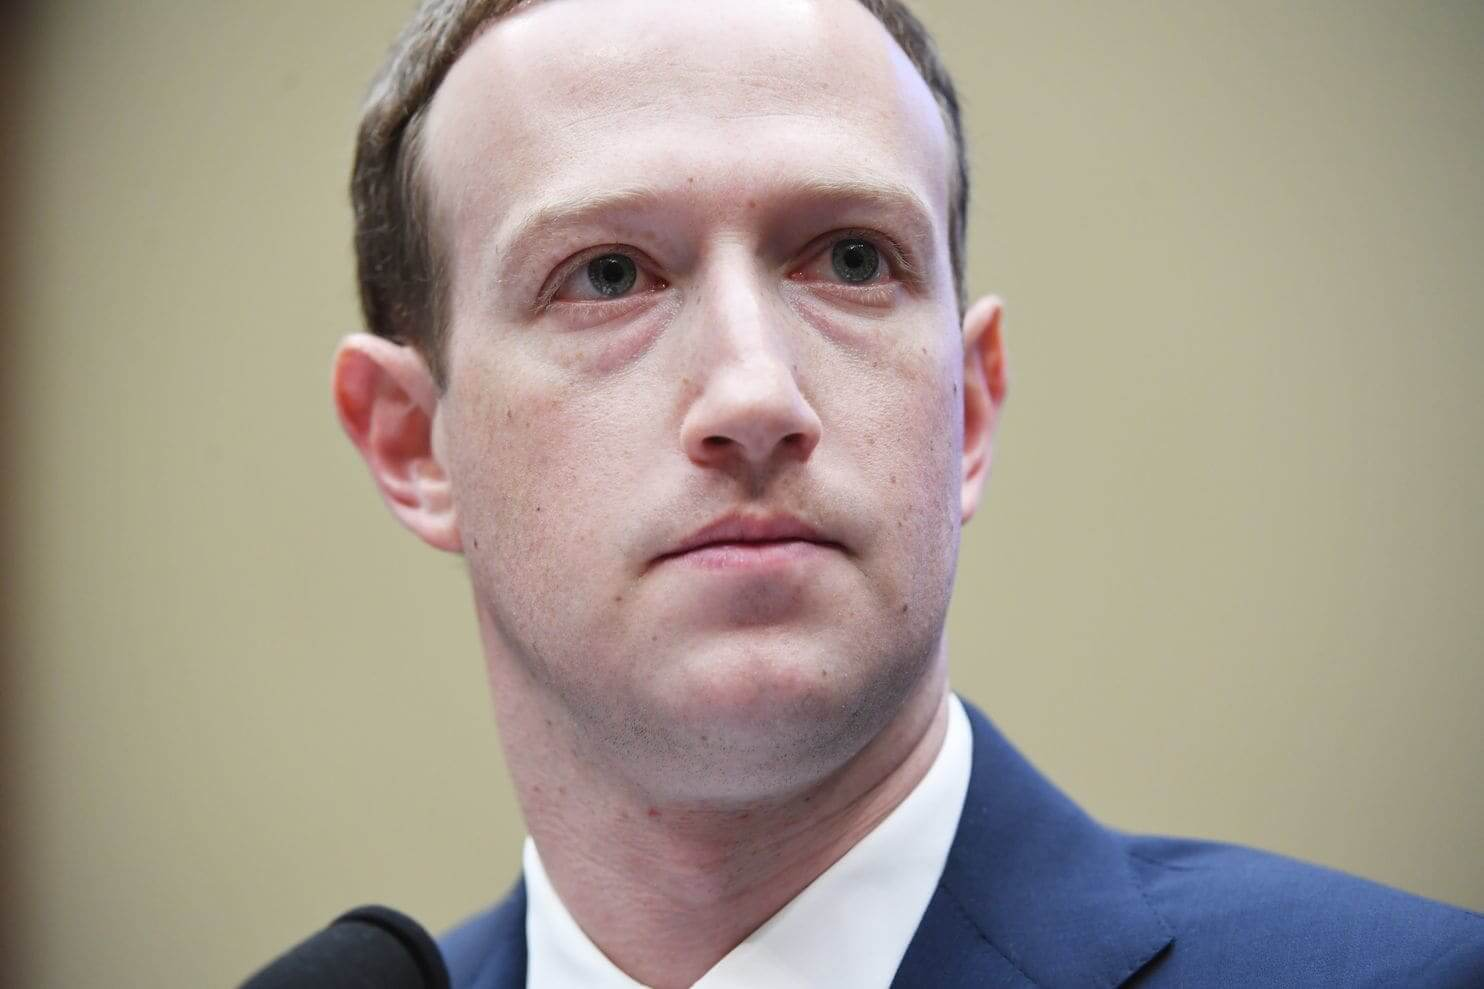 CEO Mark Zuckerberg in Limbo and Could Be Held In Contempt